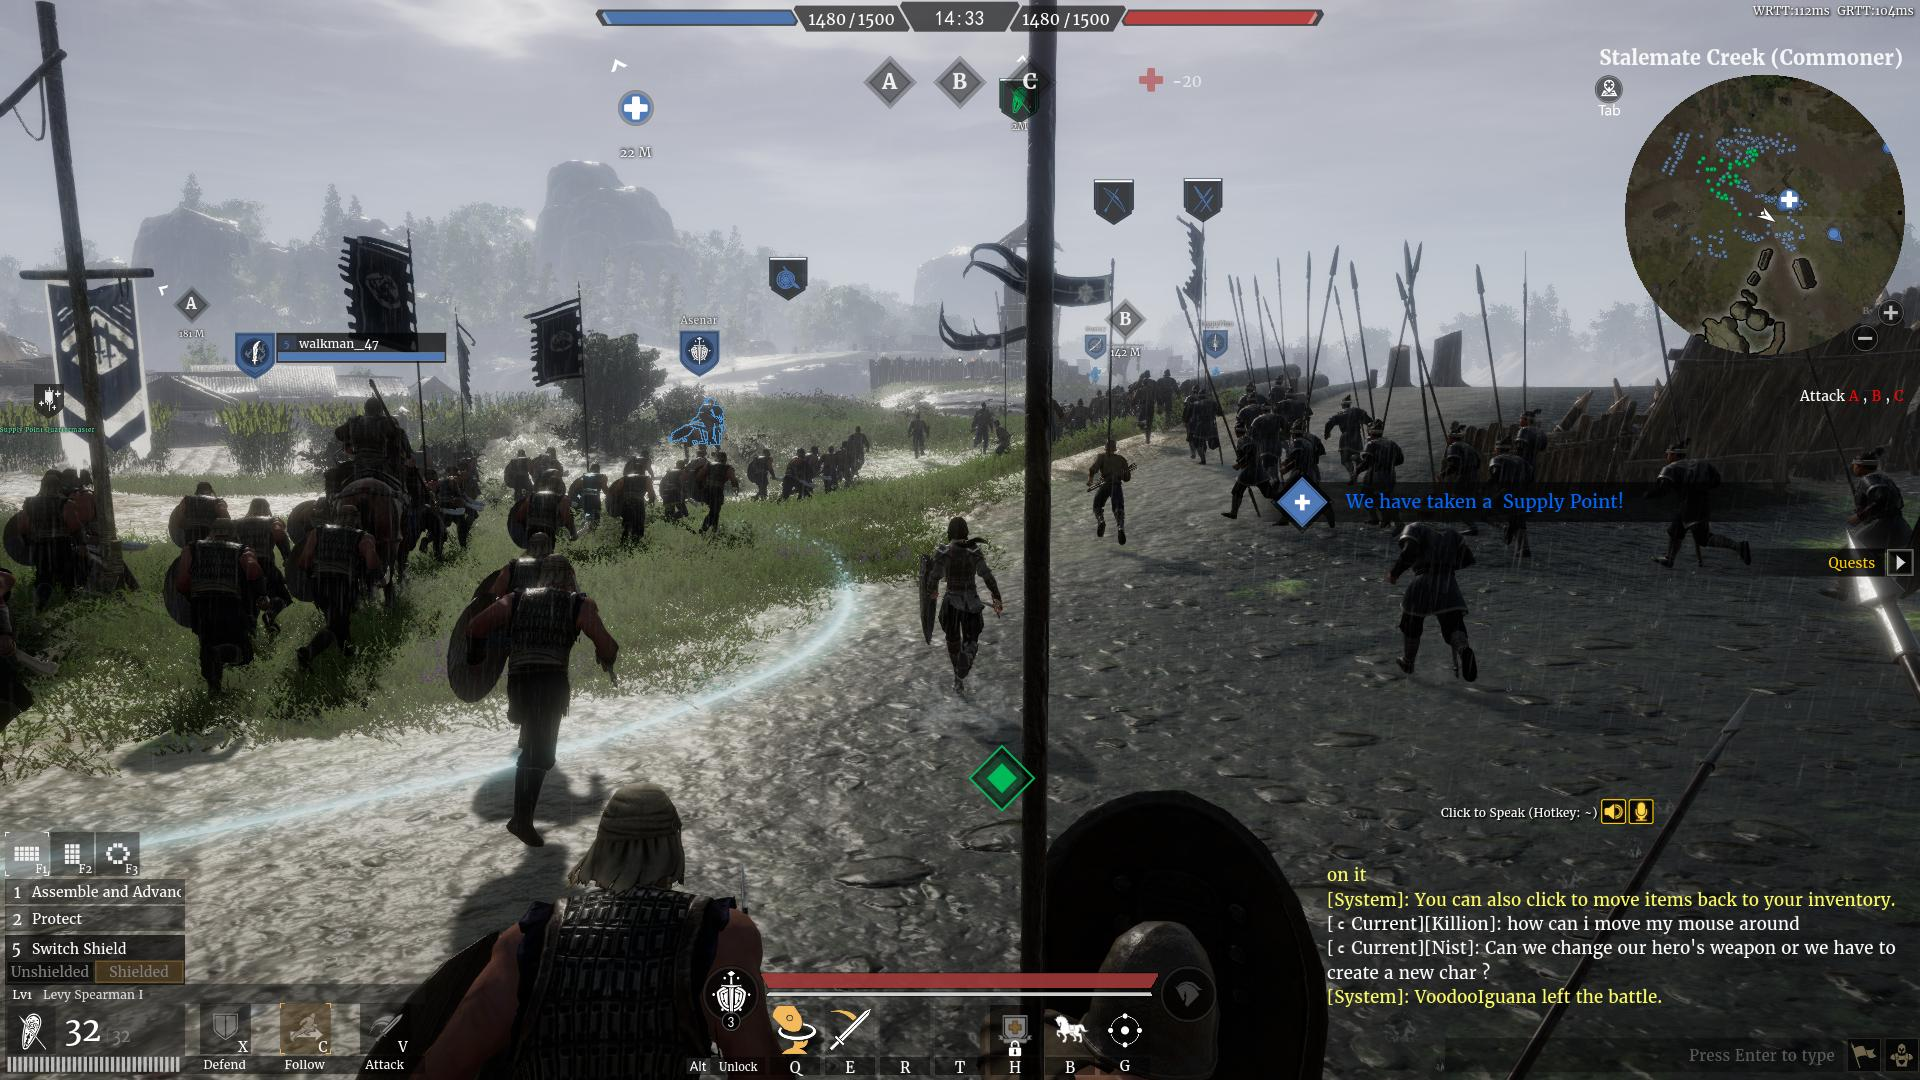 Conqueror's Blade Siege Test Hands-On Preview - Capture the Flag Field Battle